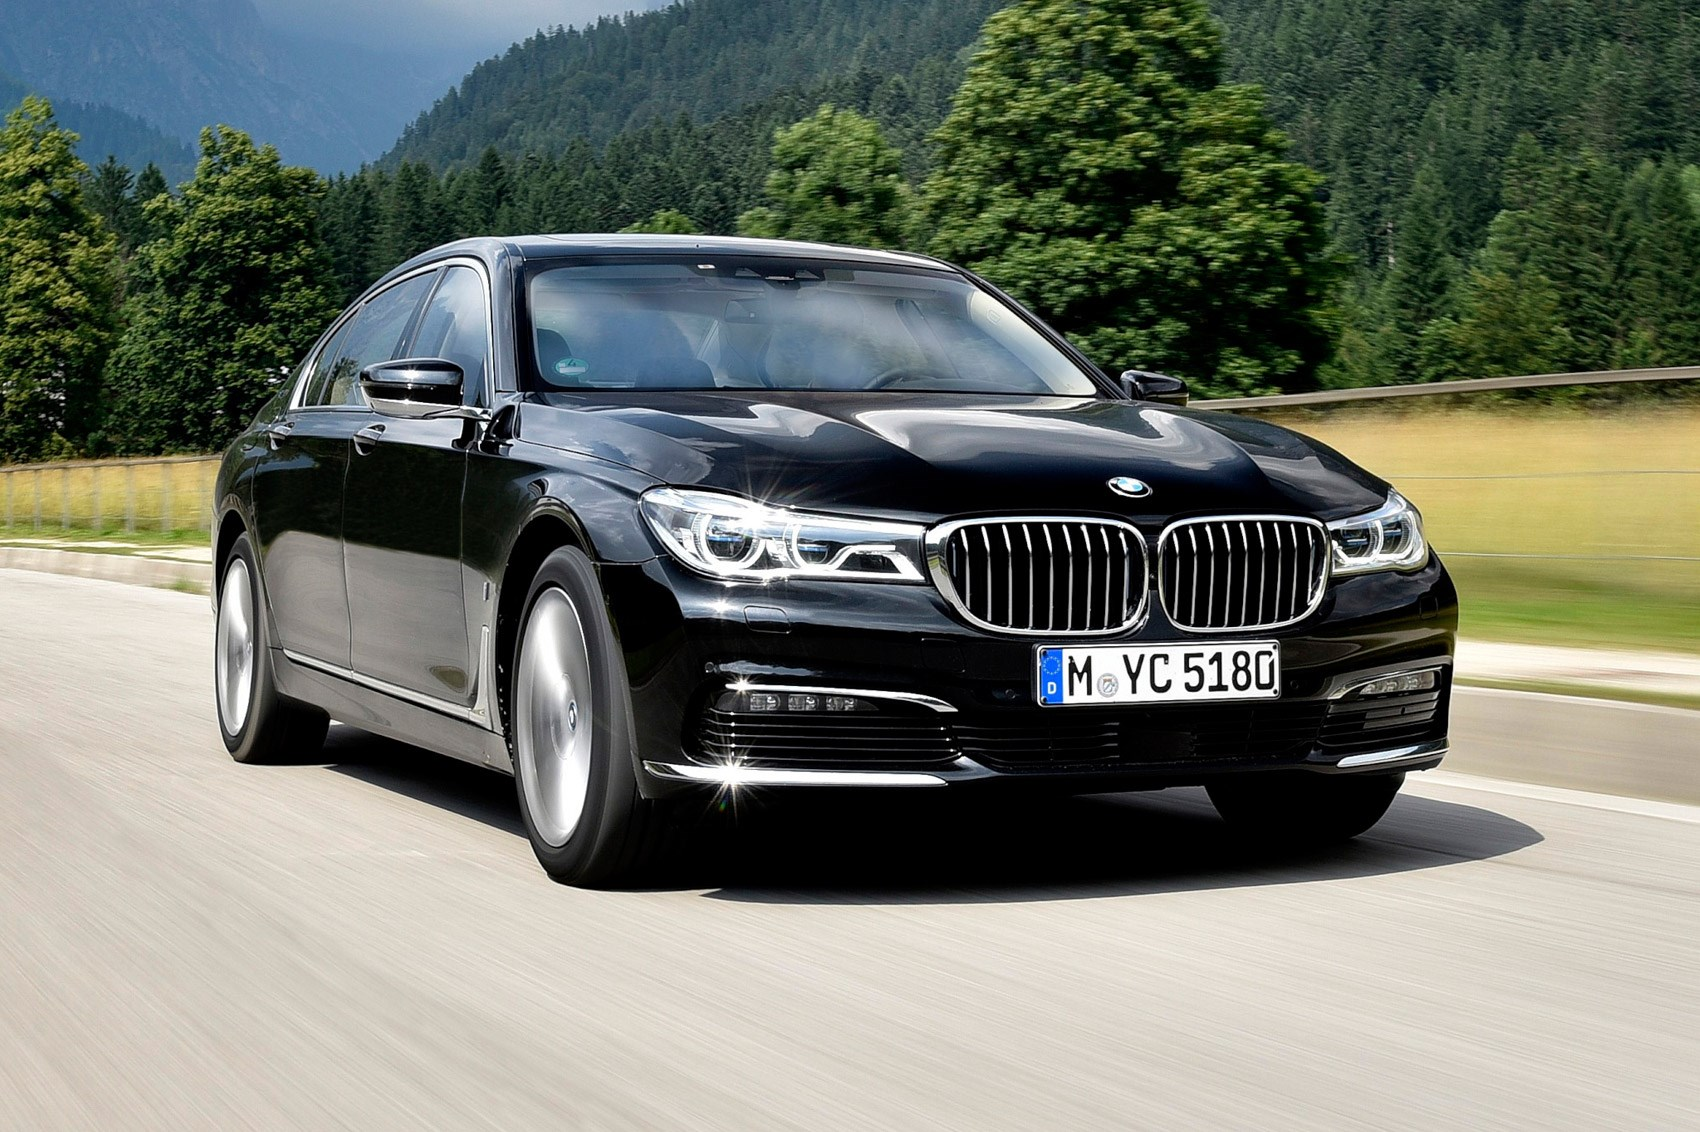 2016 Bmw 7 Series 740le Xdrive Iperformance